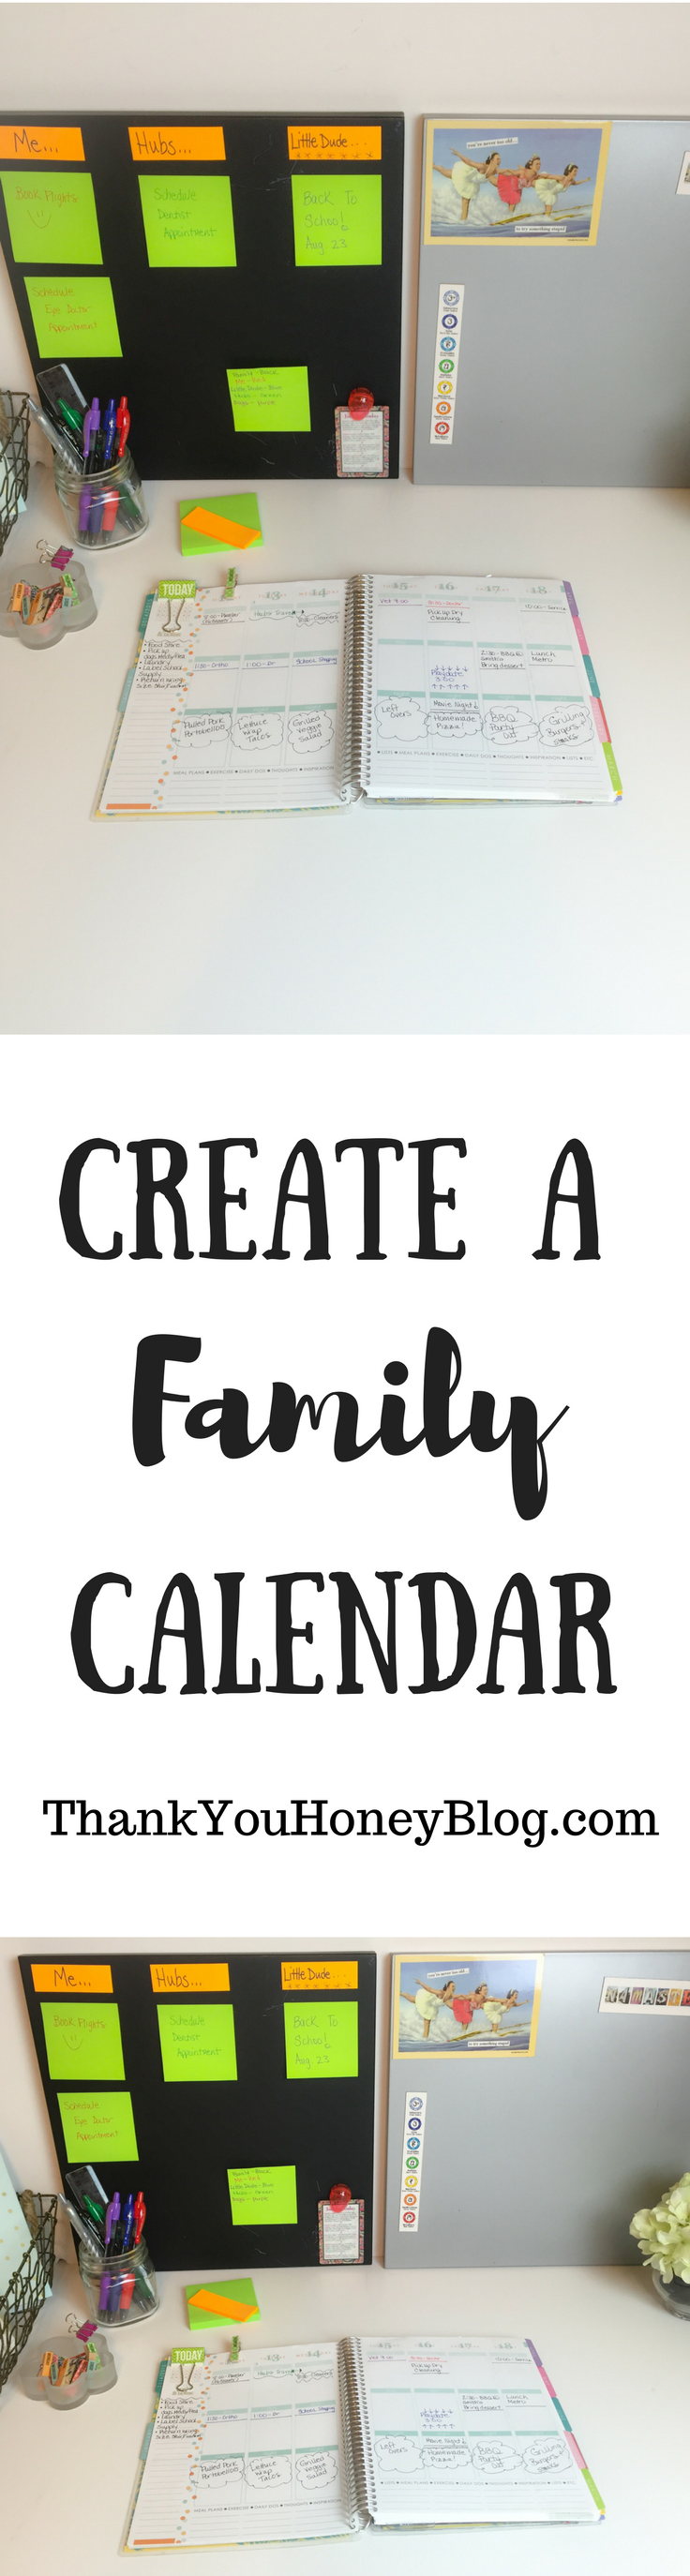 how to create a family calendar in google